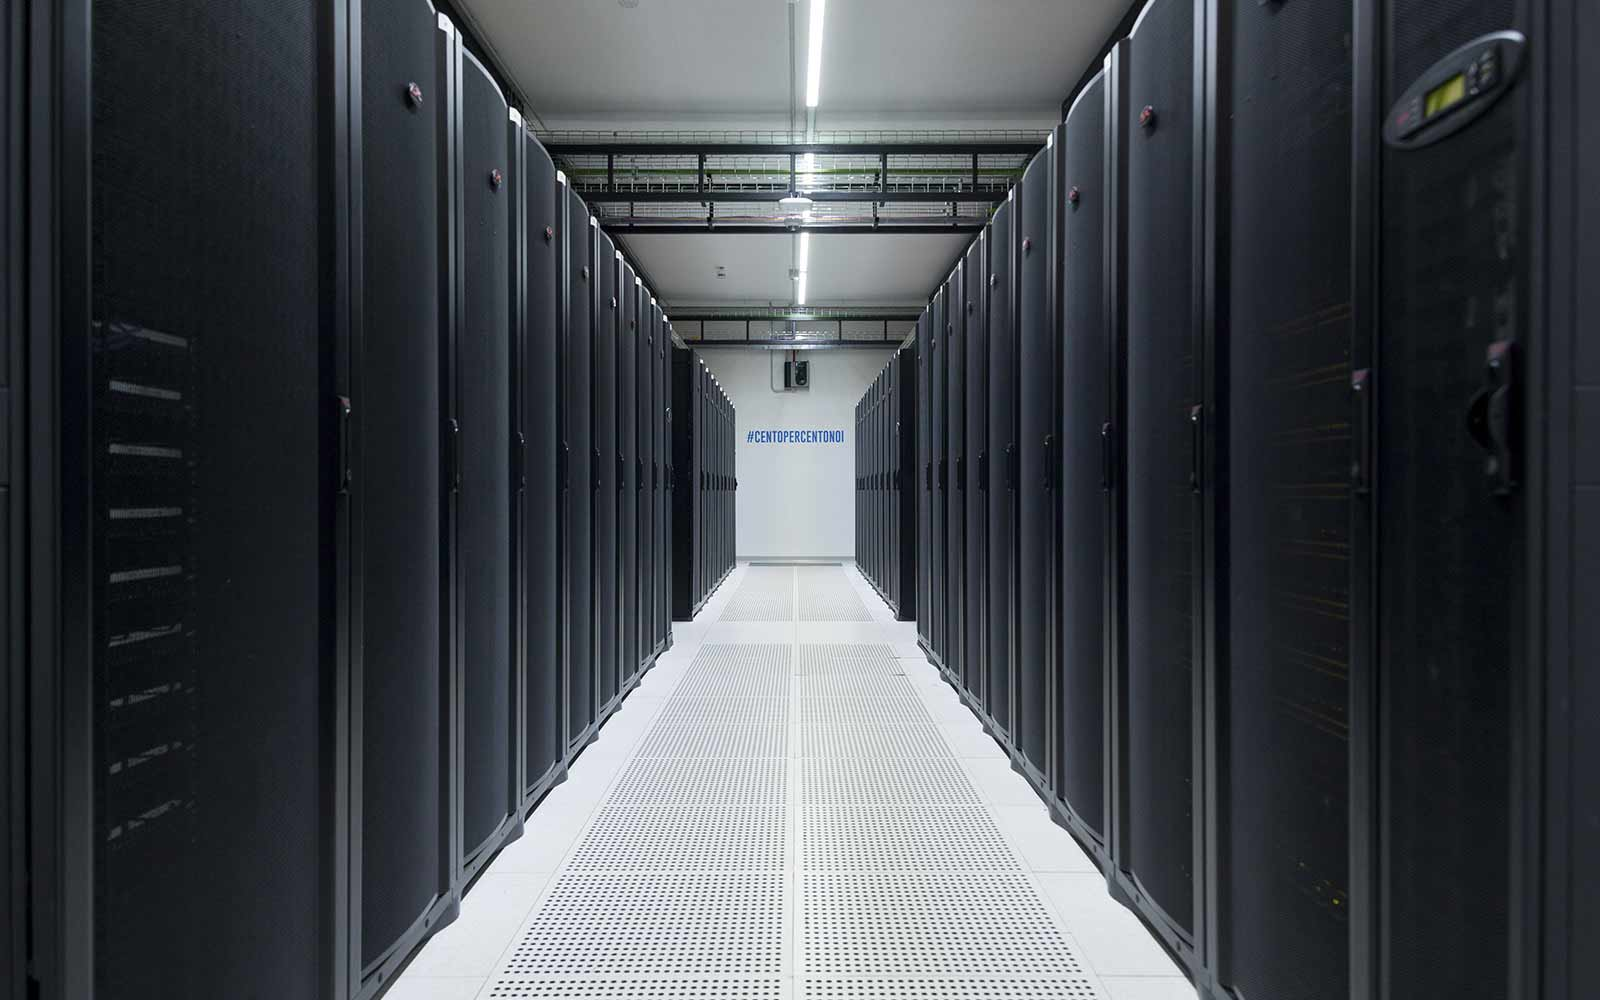 Data Center Tier 4 Elmec Informatica